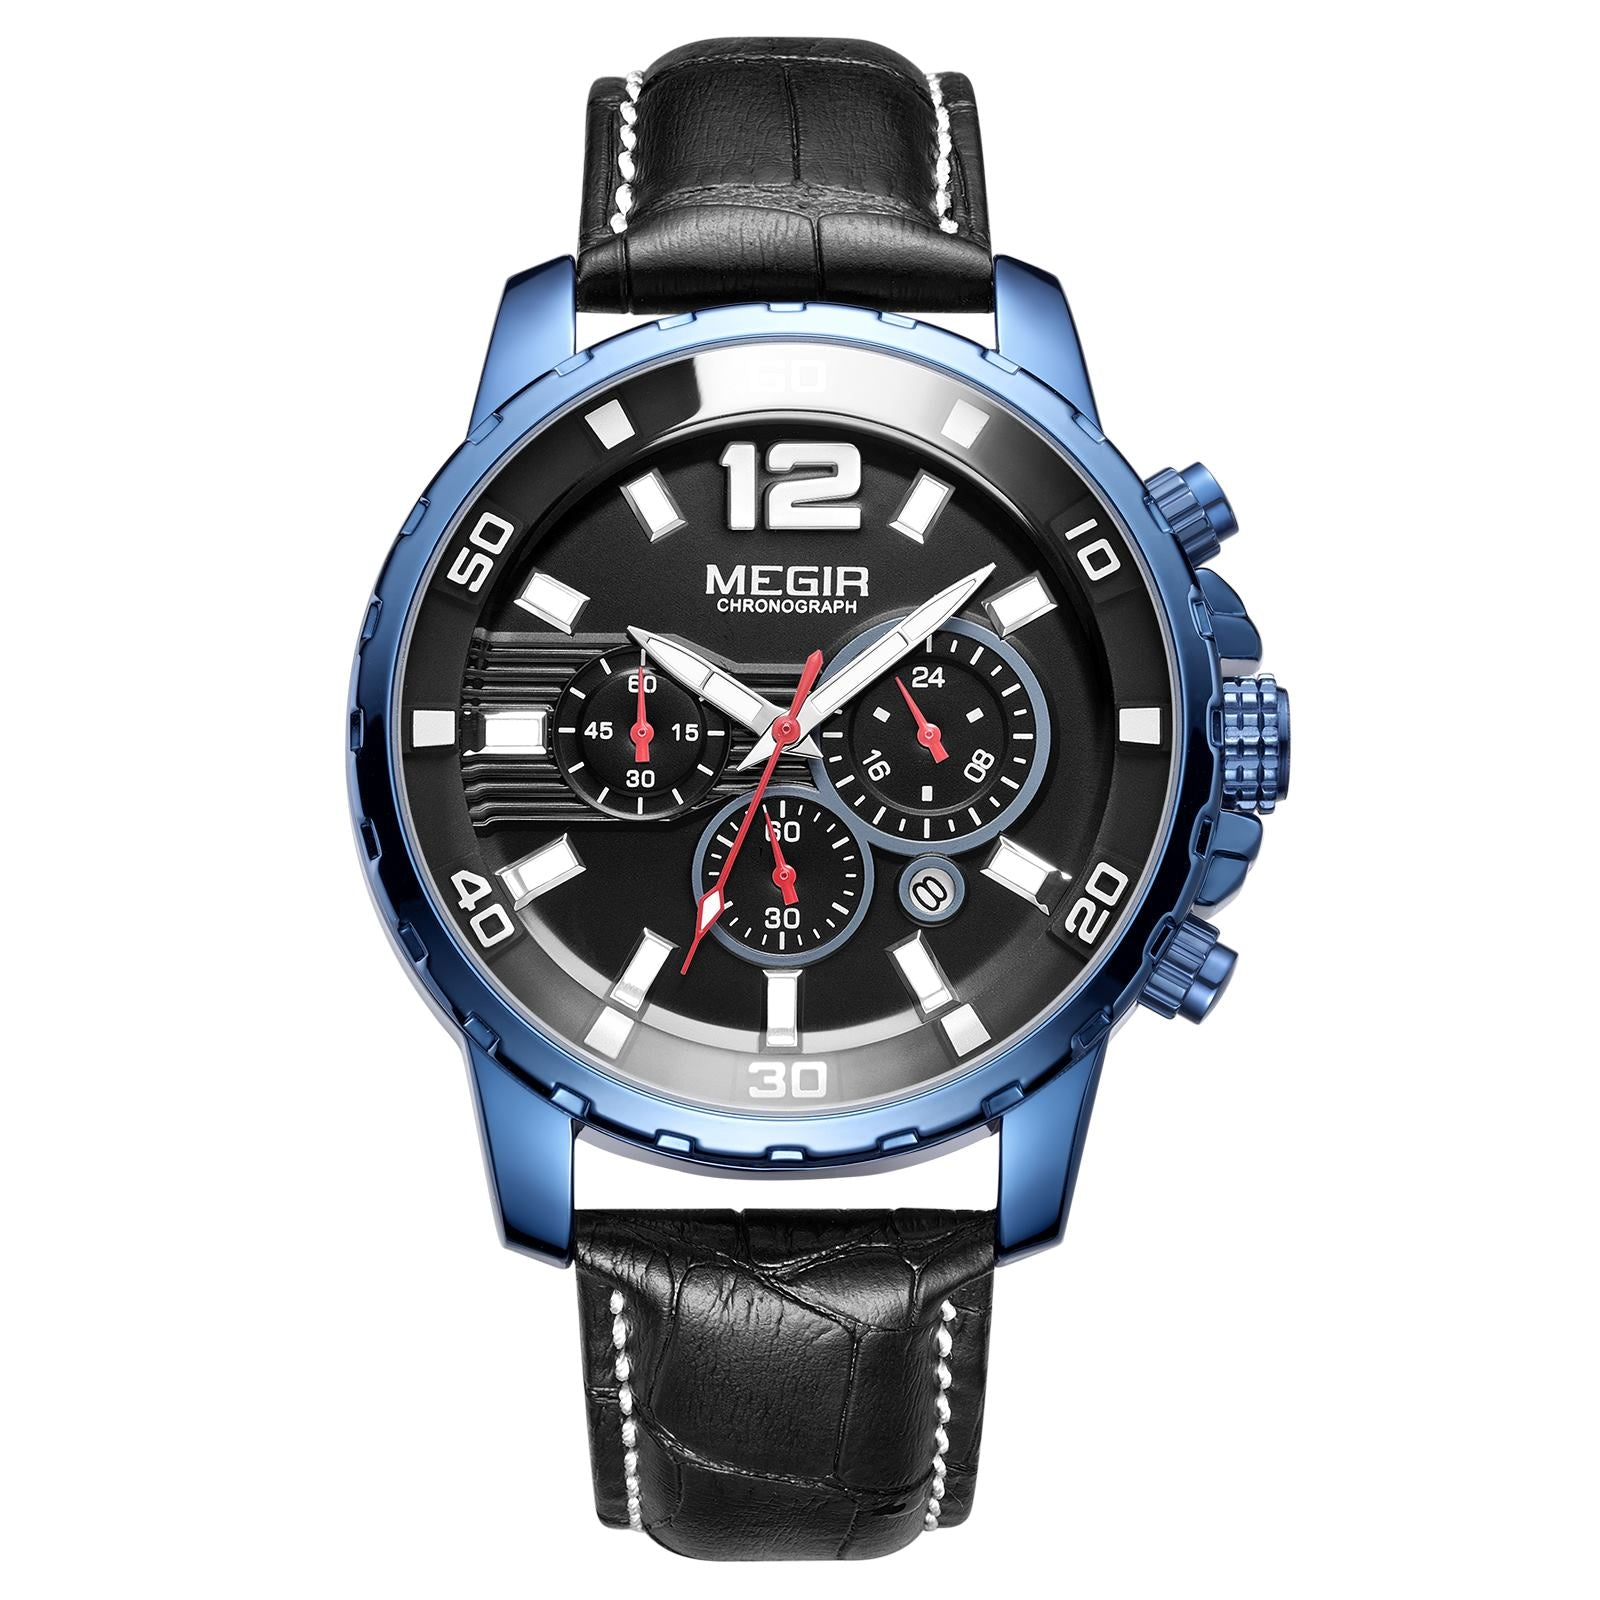 MEGIR Men's Quartz Chronograph Watch 2068